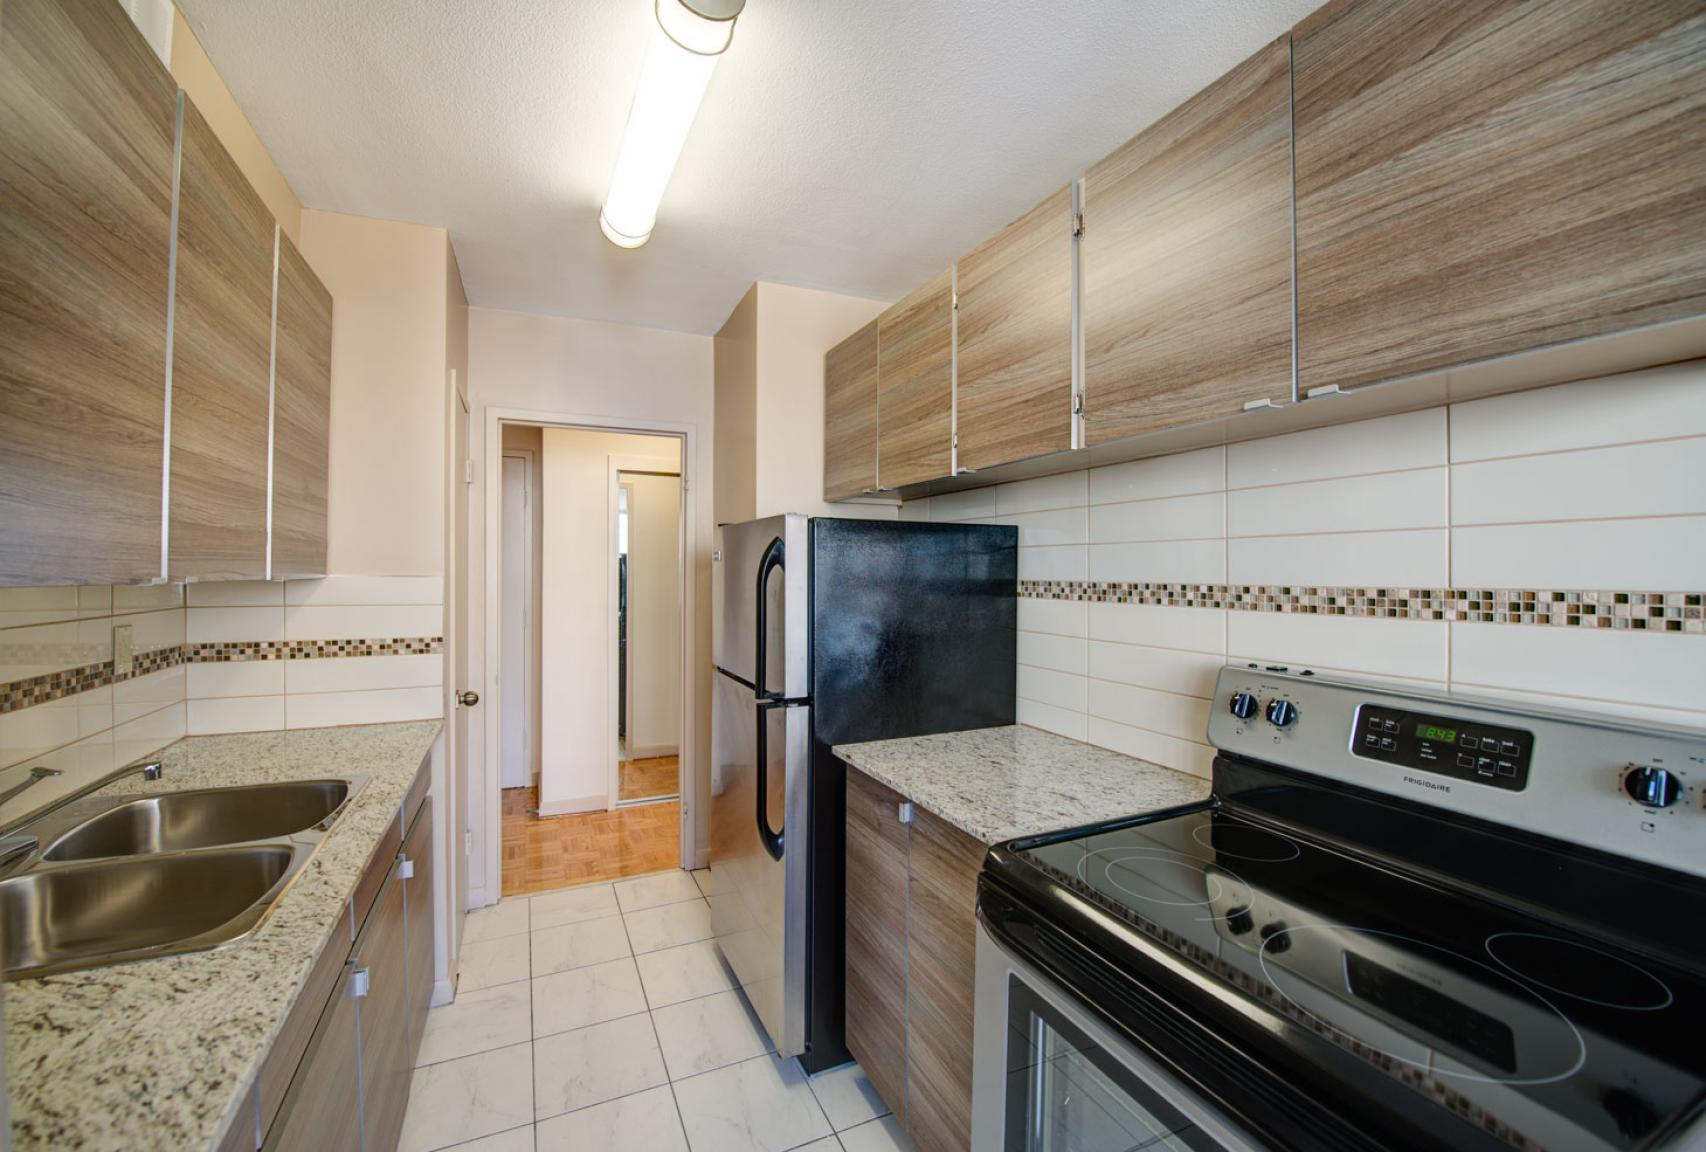 1 bedroom Apartments for rent in Toronto at Holly Tower - Photo 12 - RentersPages – L399824